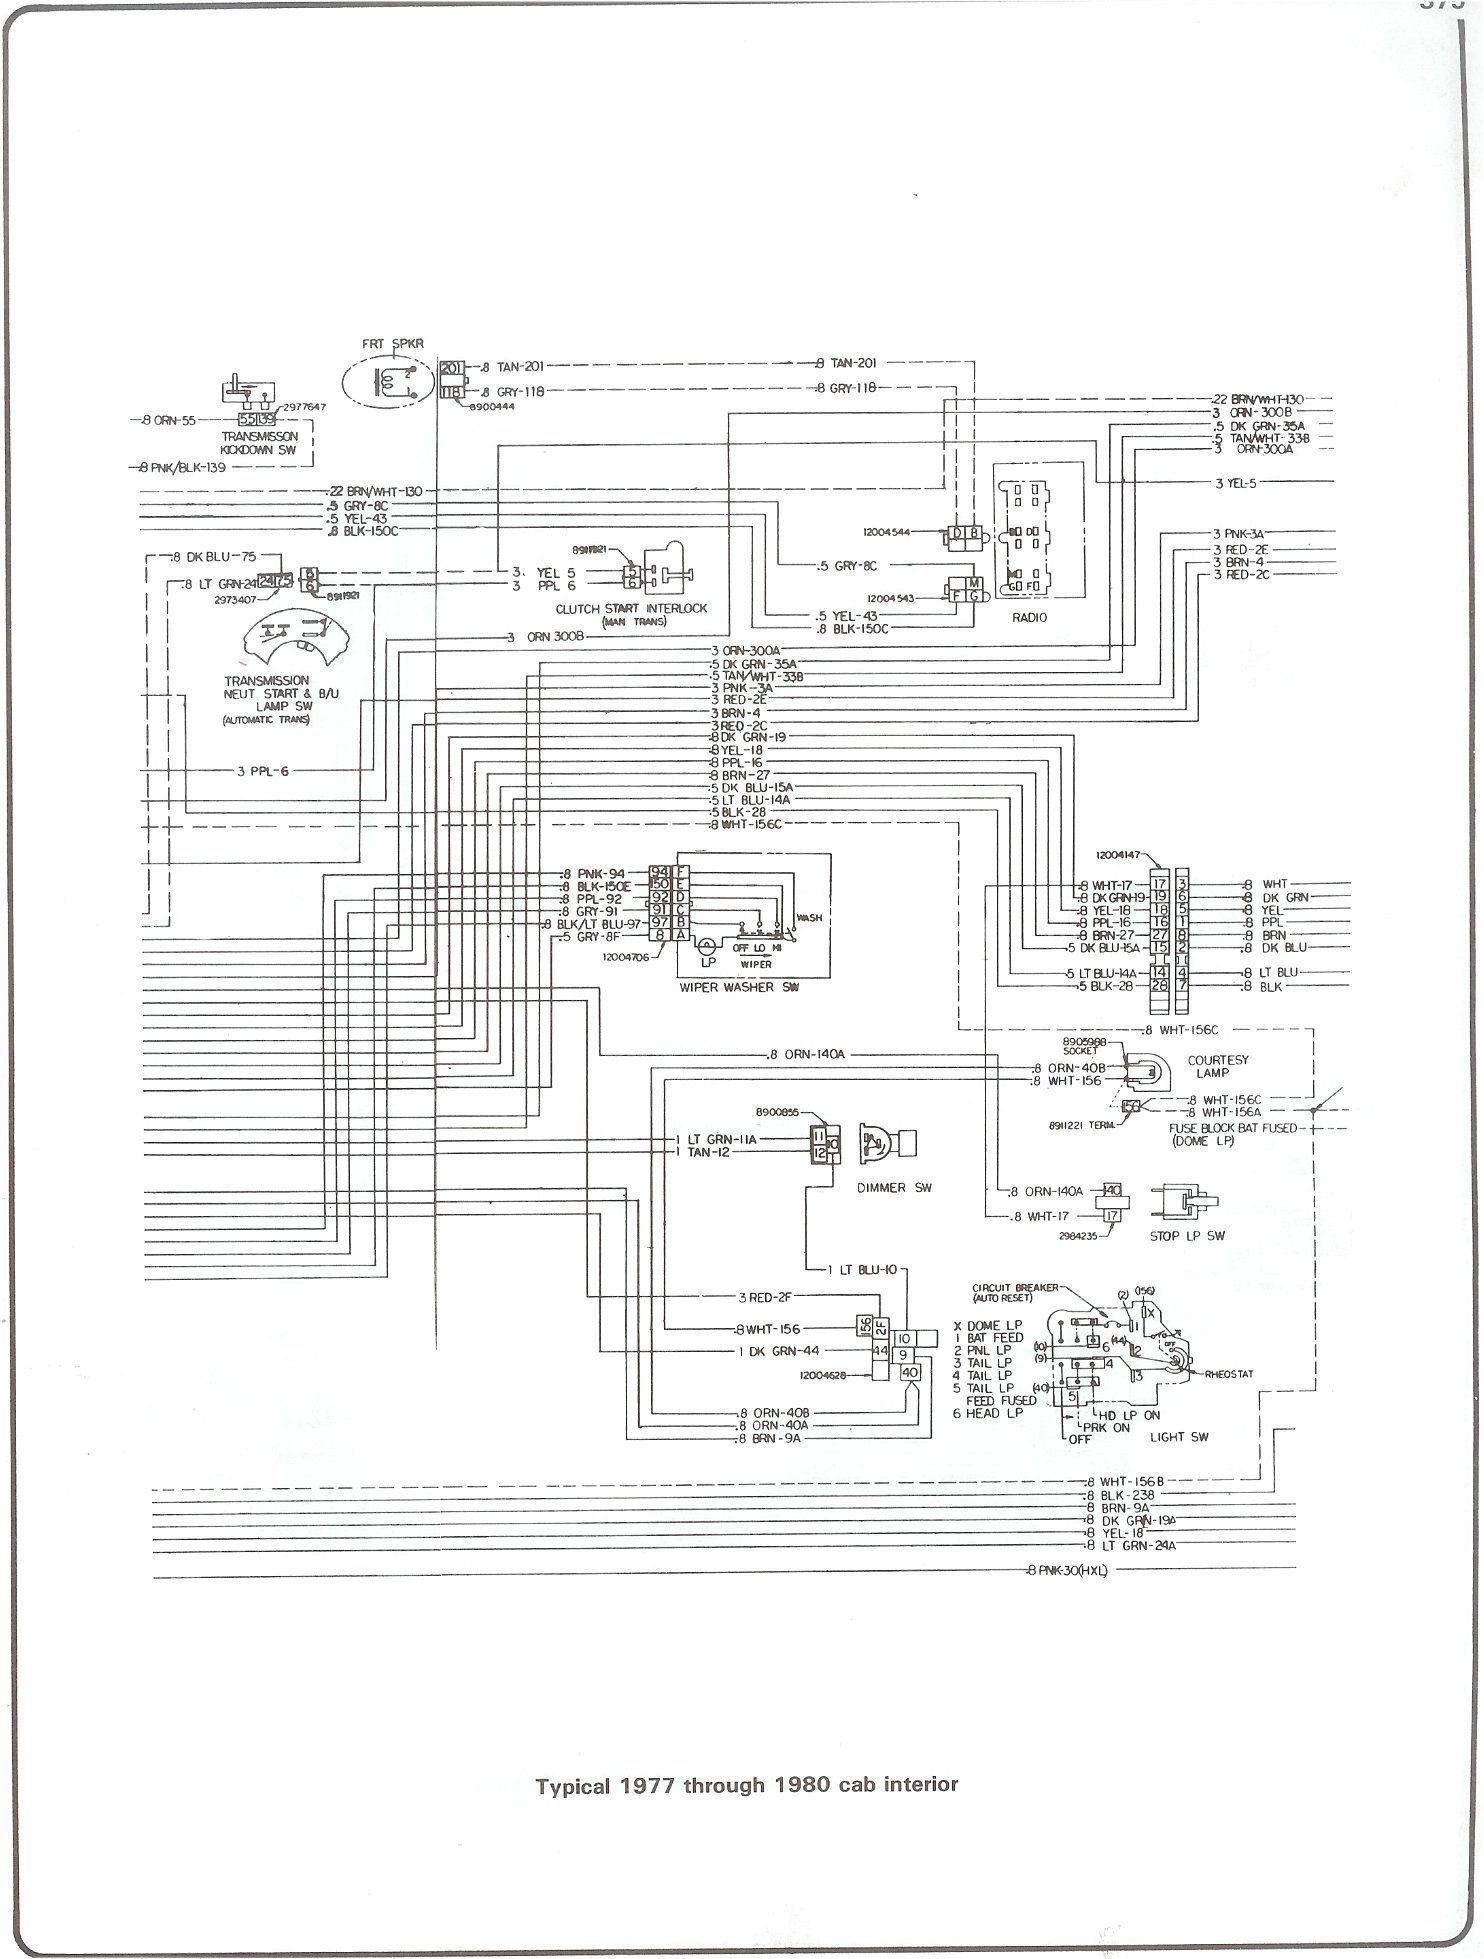 77 80_cab_inter complete 73 87 wiring diagrams Chevrolet Engine Wiring Diagram at bayanpartner.co